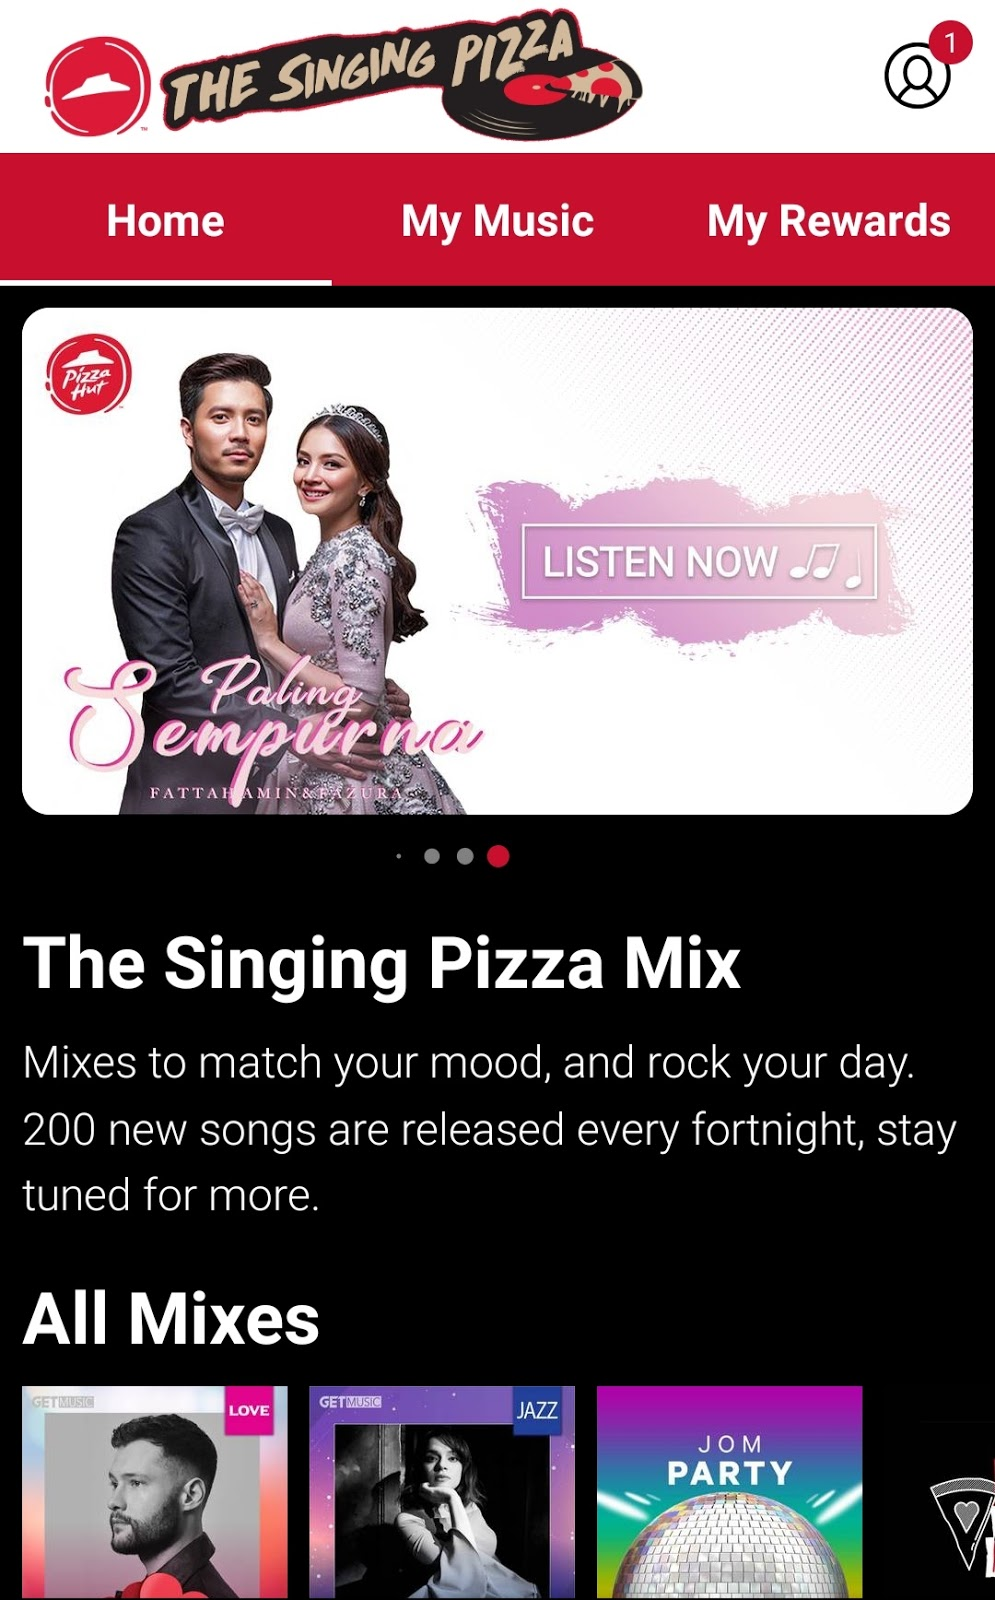 THE SINGING PIZZA